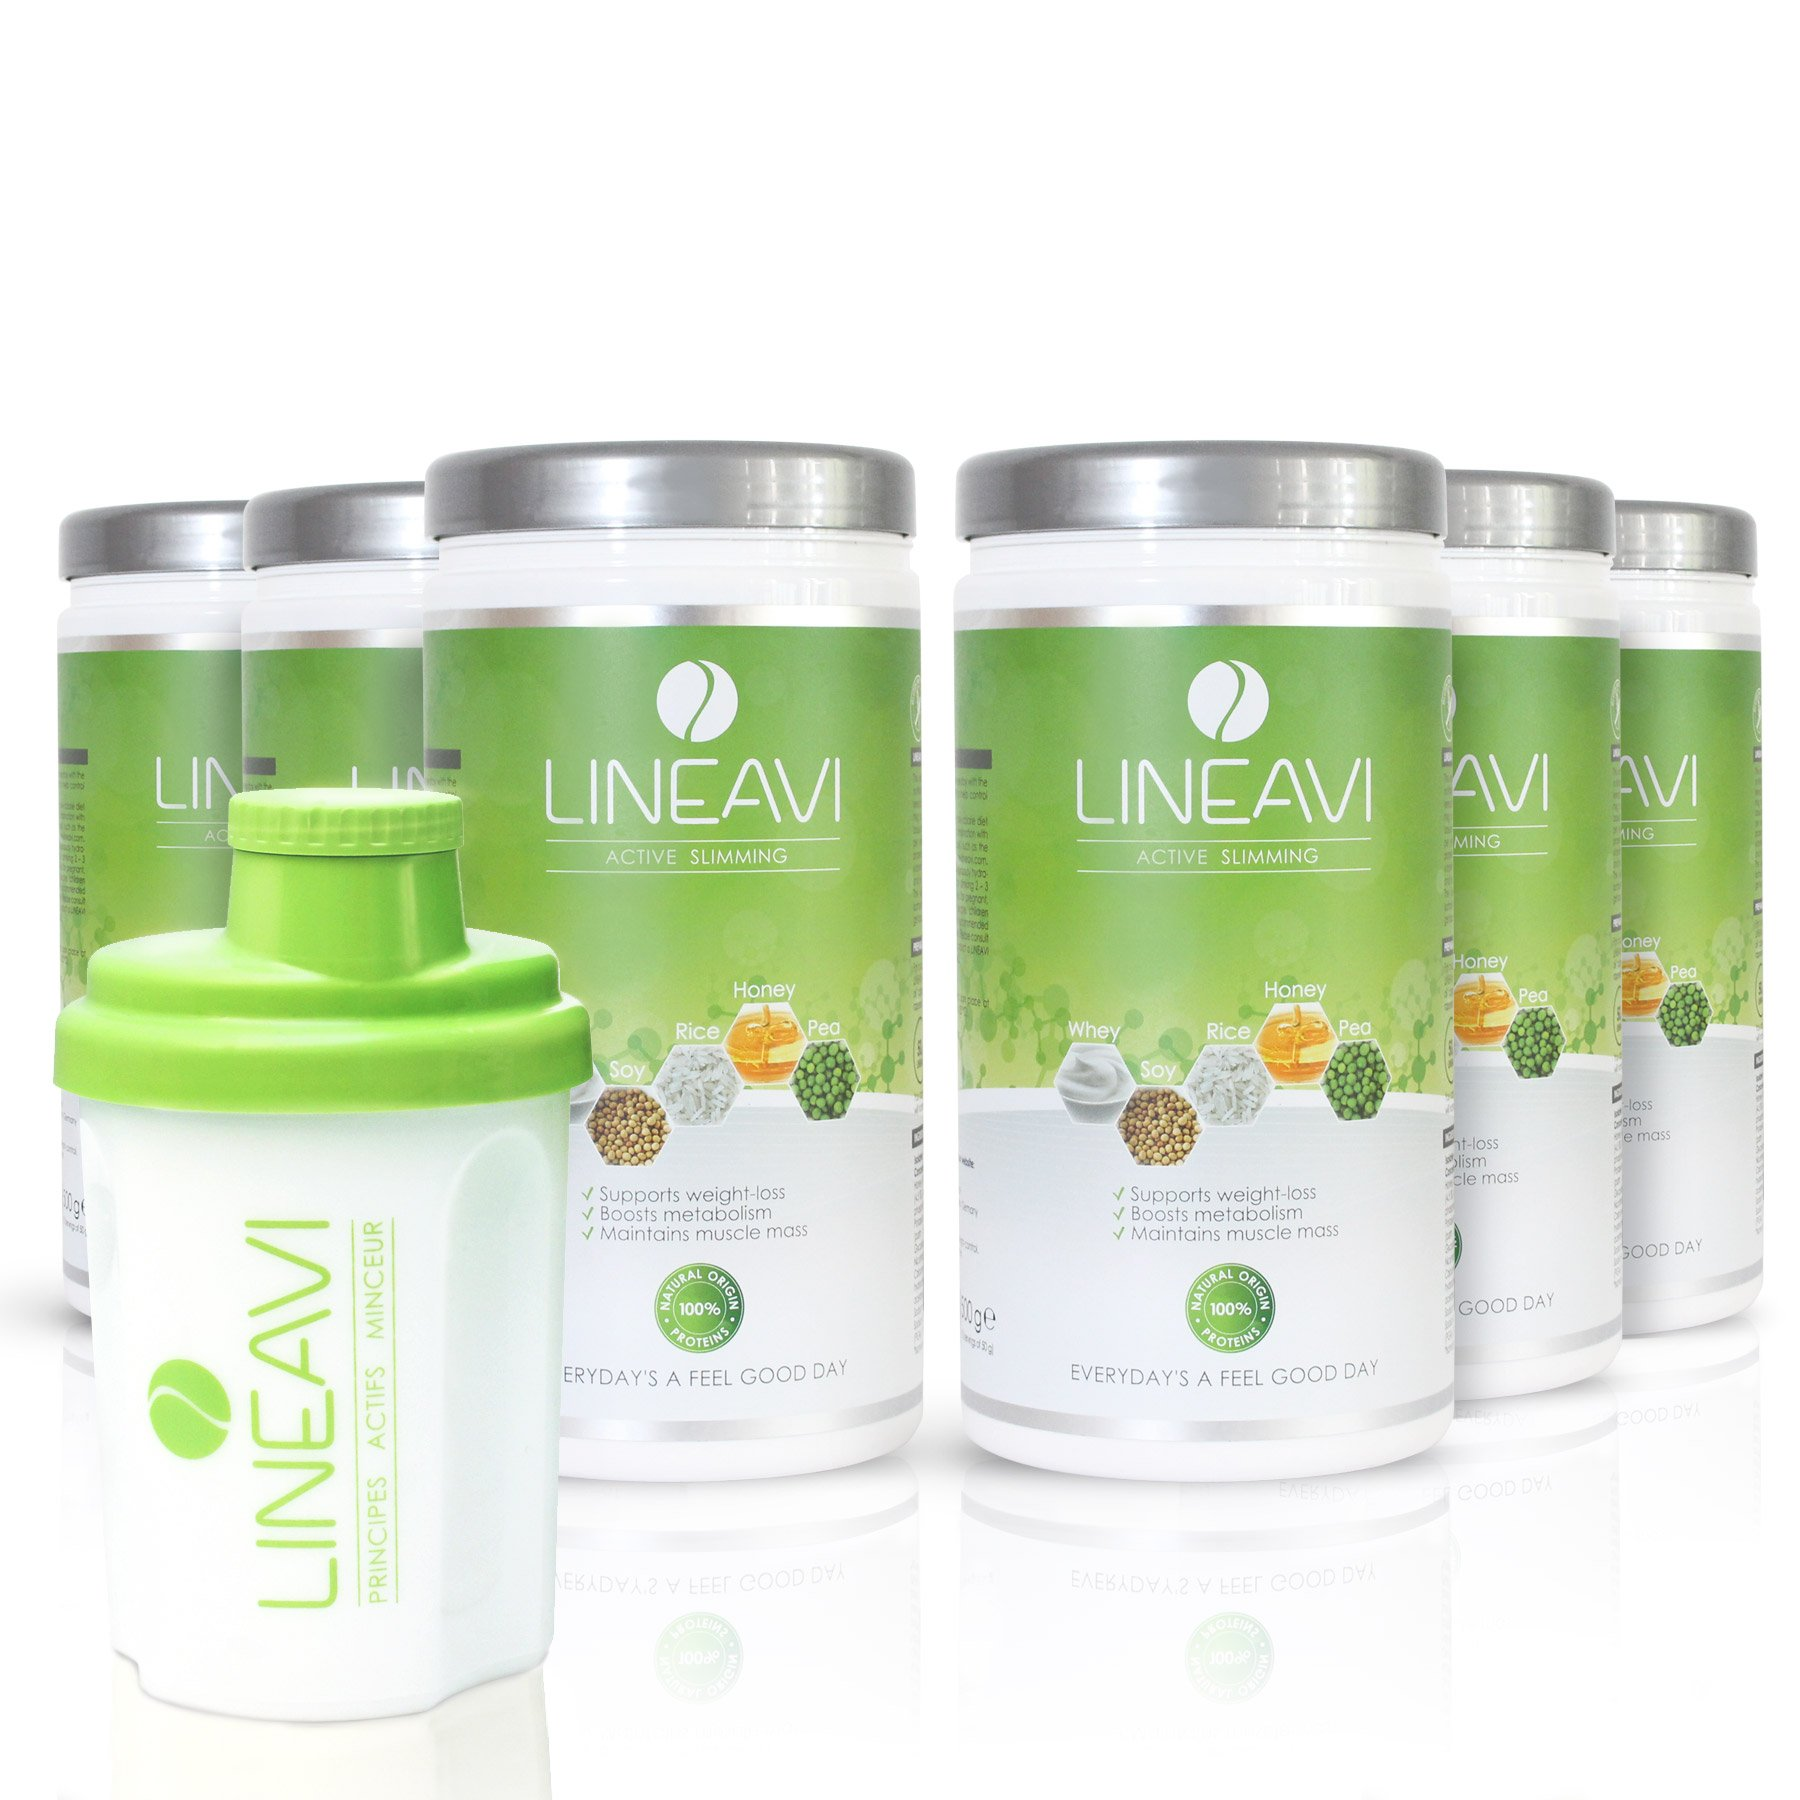 Lineavi Weight Loss Shakes - The Natural Meal Replacement Shakes for Your Diet Plan + Shaker, 6x17.6 oz | Gluten-Free & Lactose-Free | 6 Pack